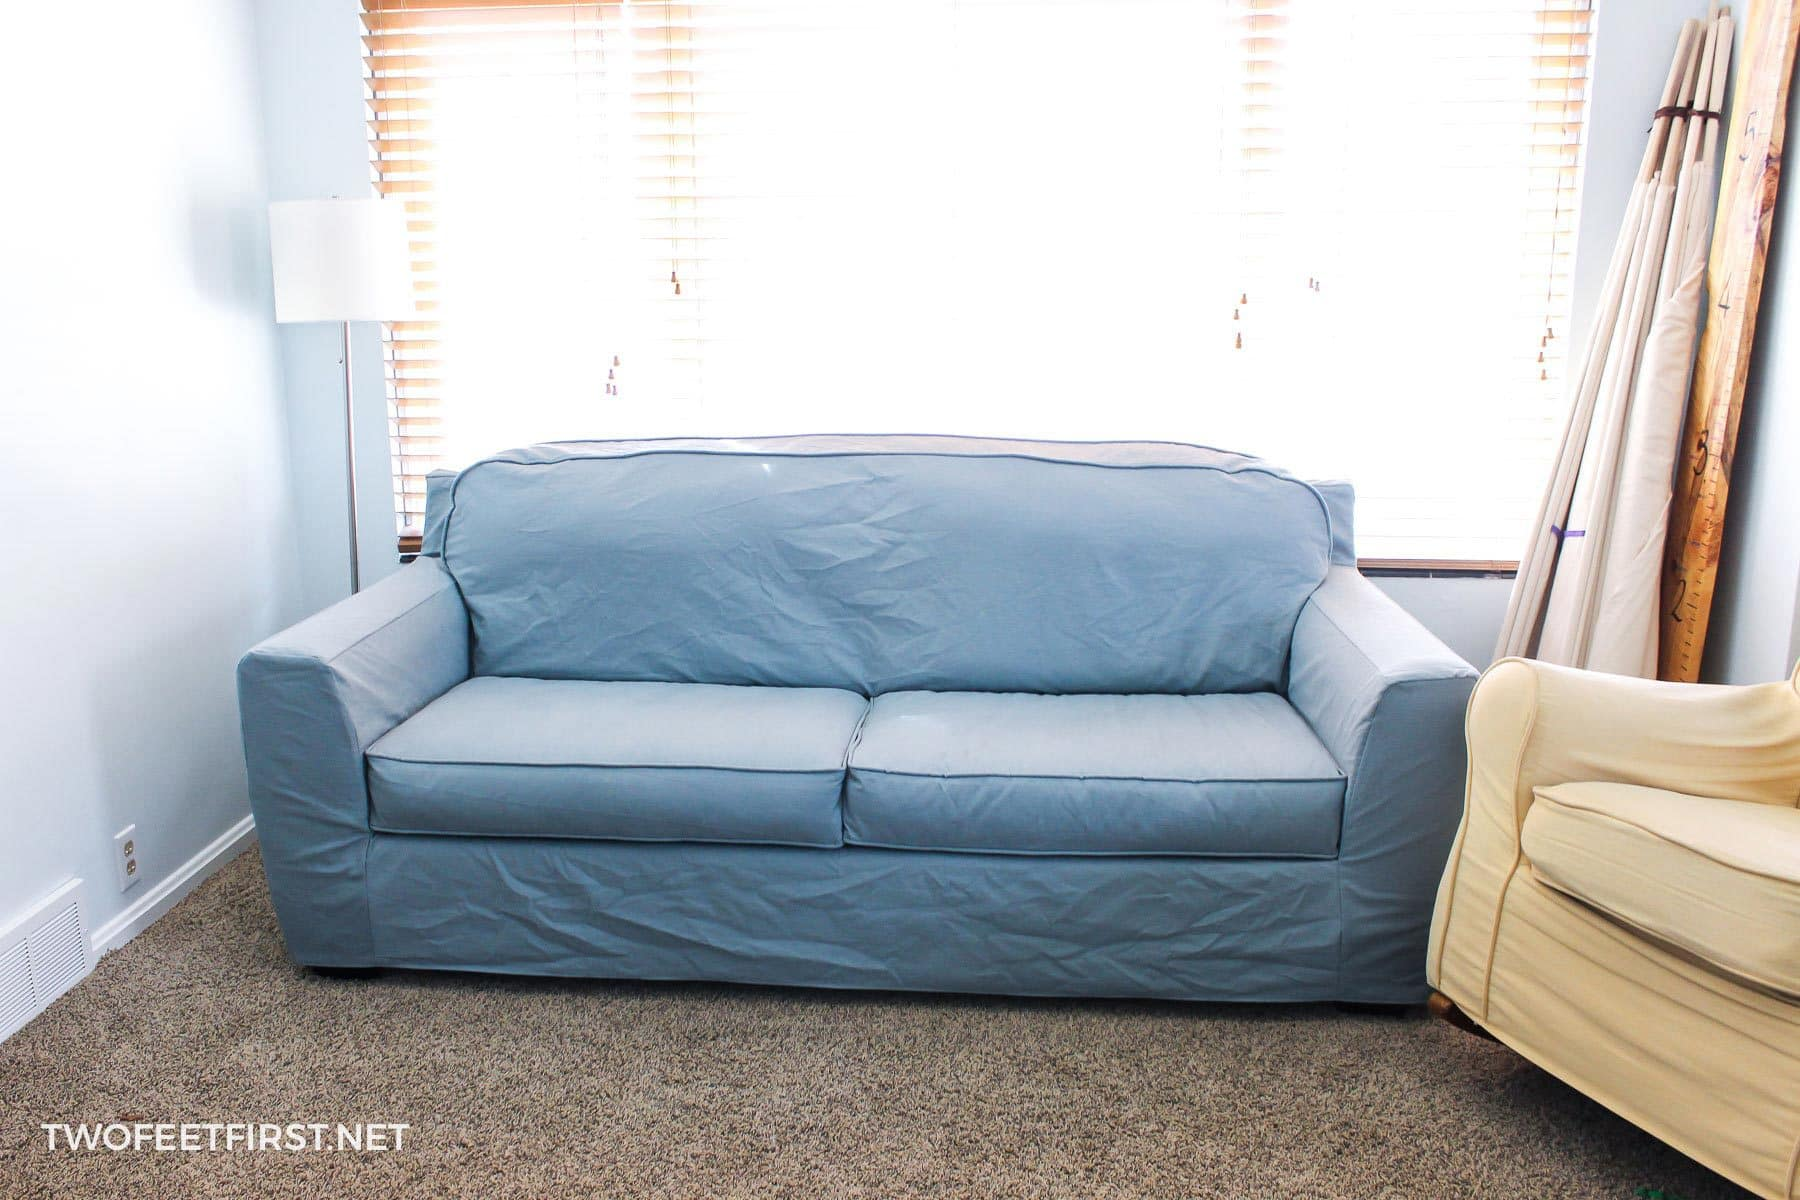 Ordinaire Create A Slipcover For A Sofa